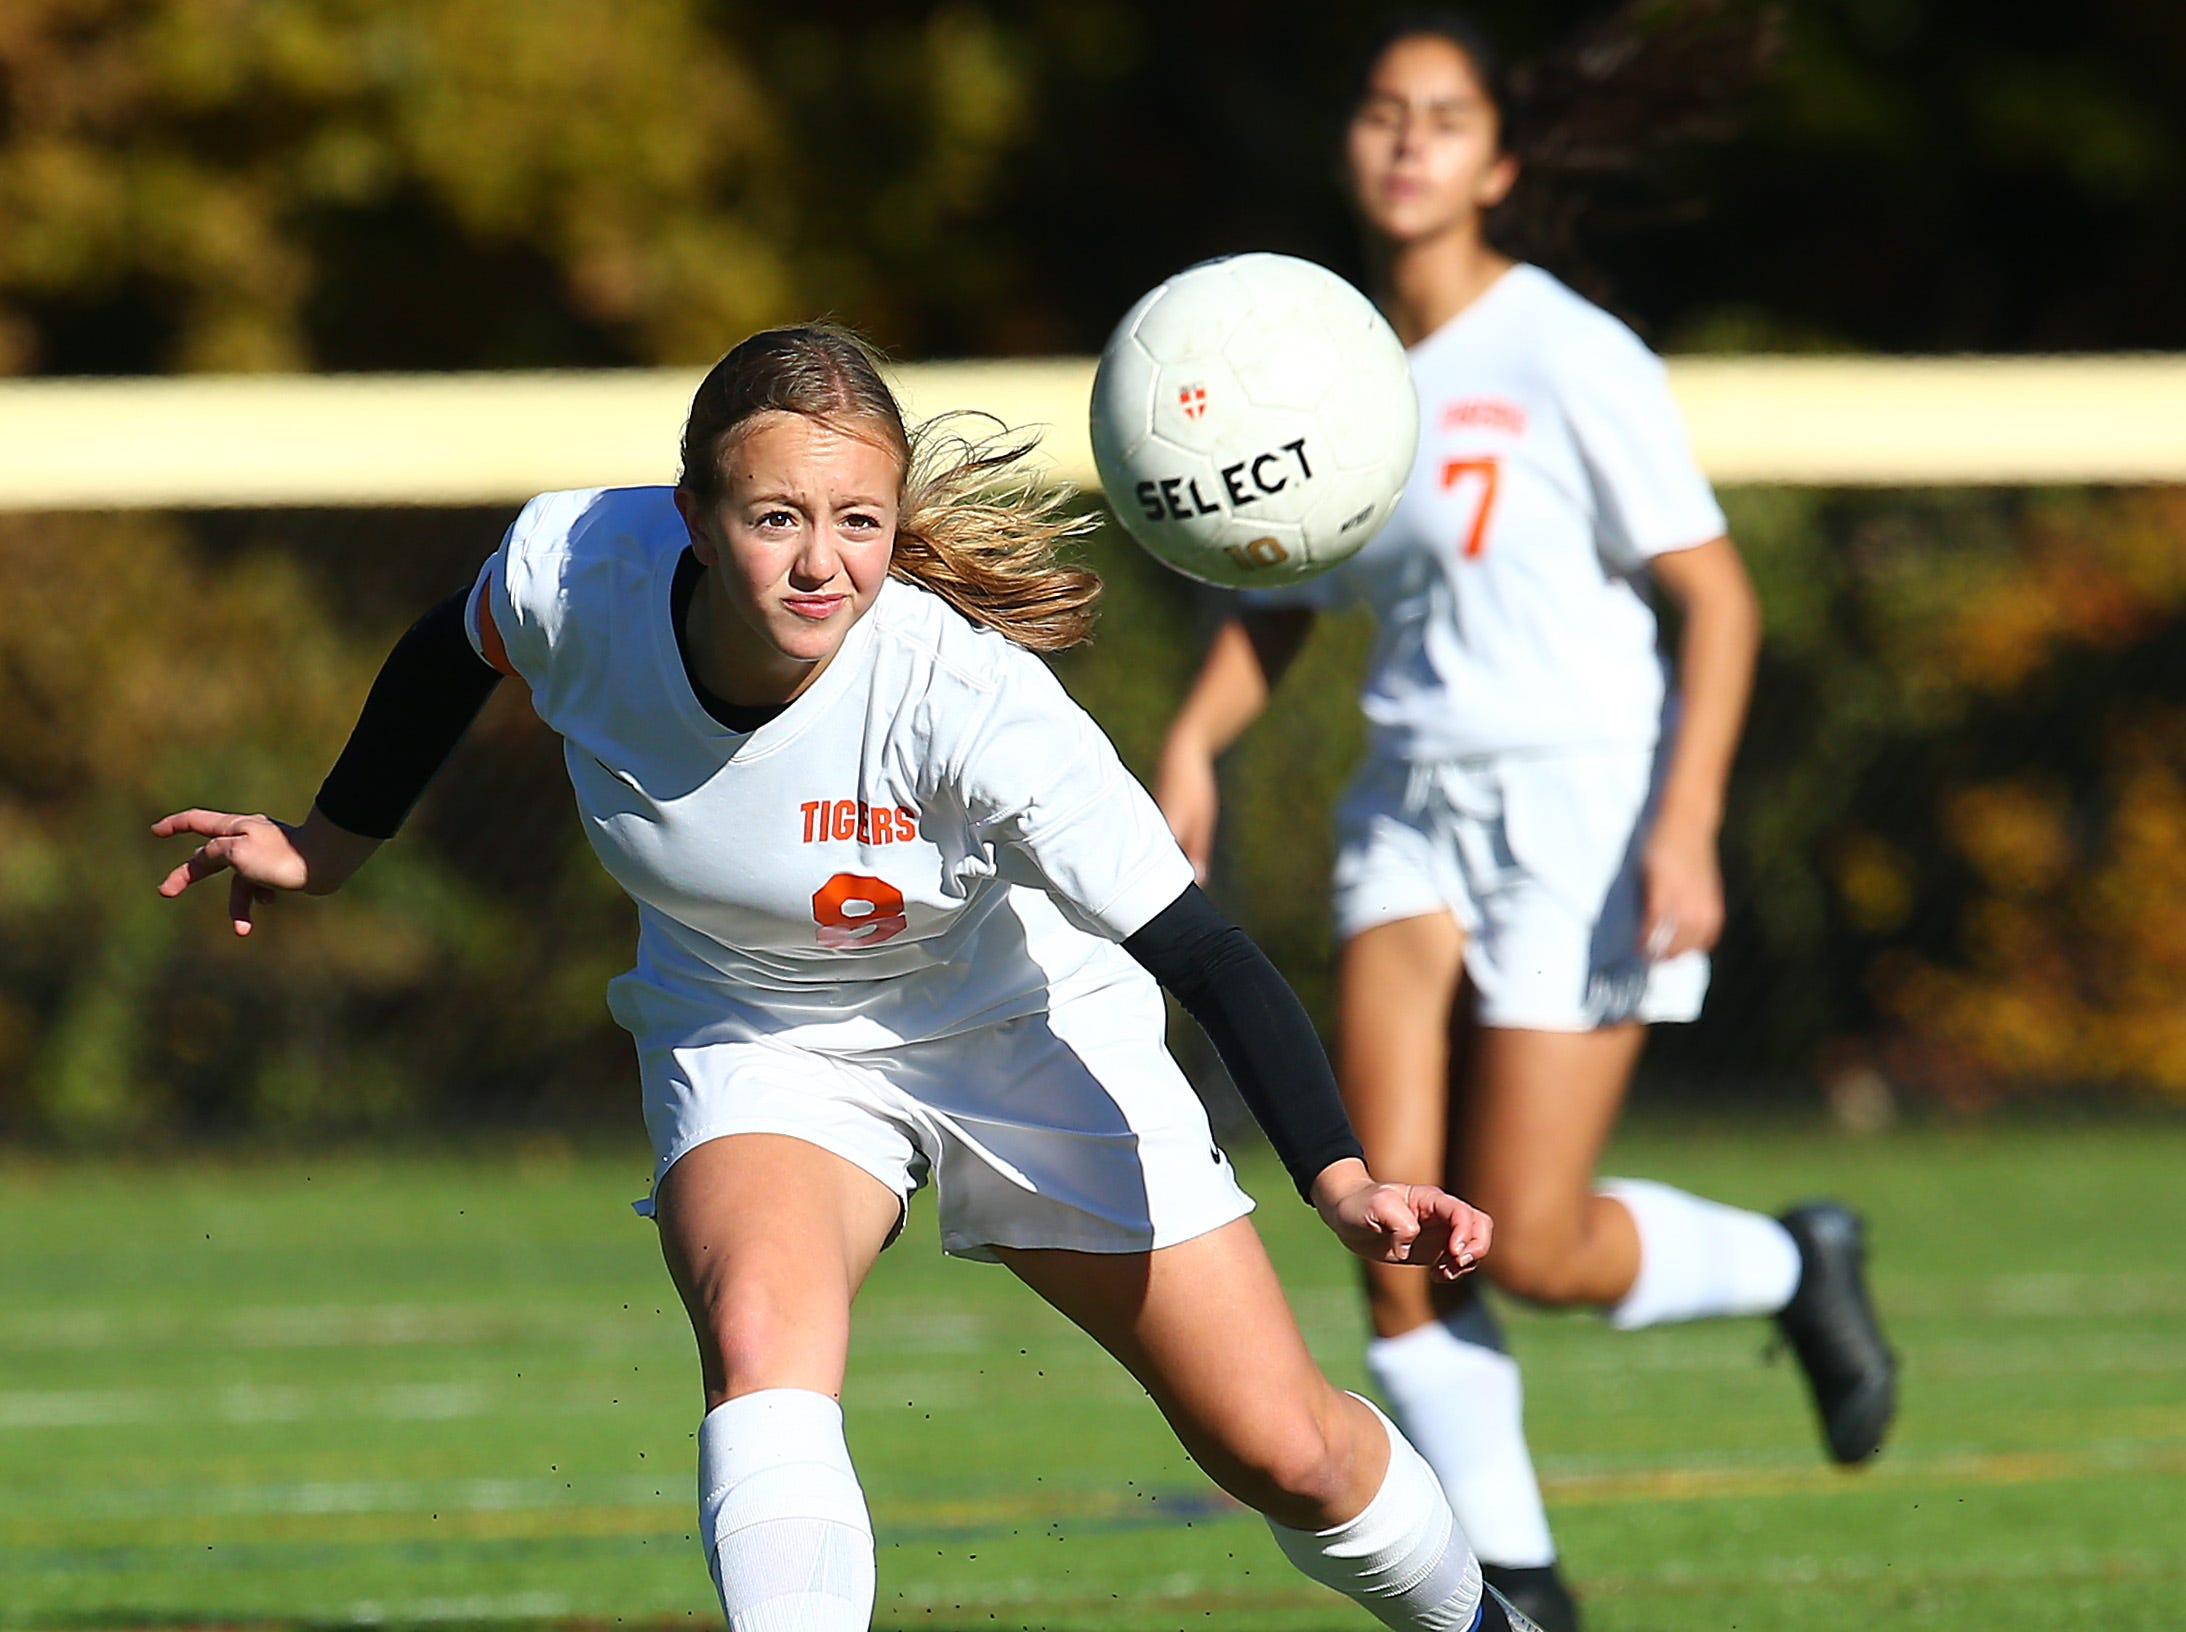 Dover's Kassandra Mendoza heads the ball vs. Morris Tech during their NJSIAA North 2 Group II opening round girls soccer match at Veterans Memorial Park. October 30, 2018, Denville, NJ